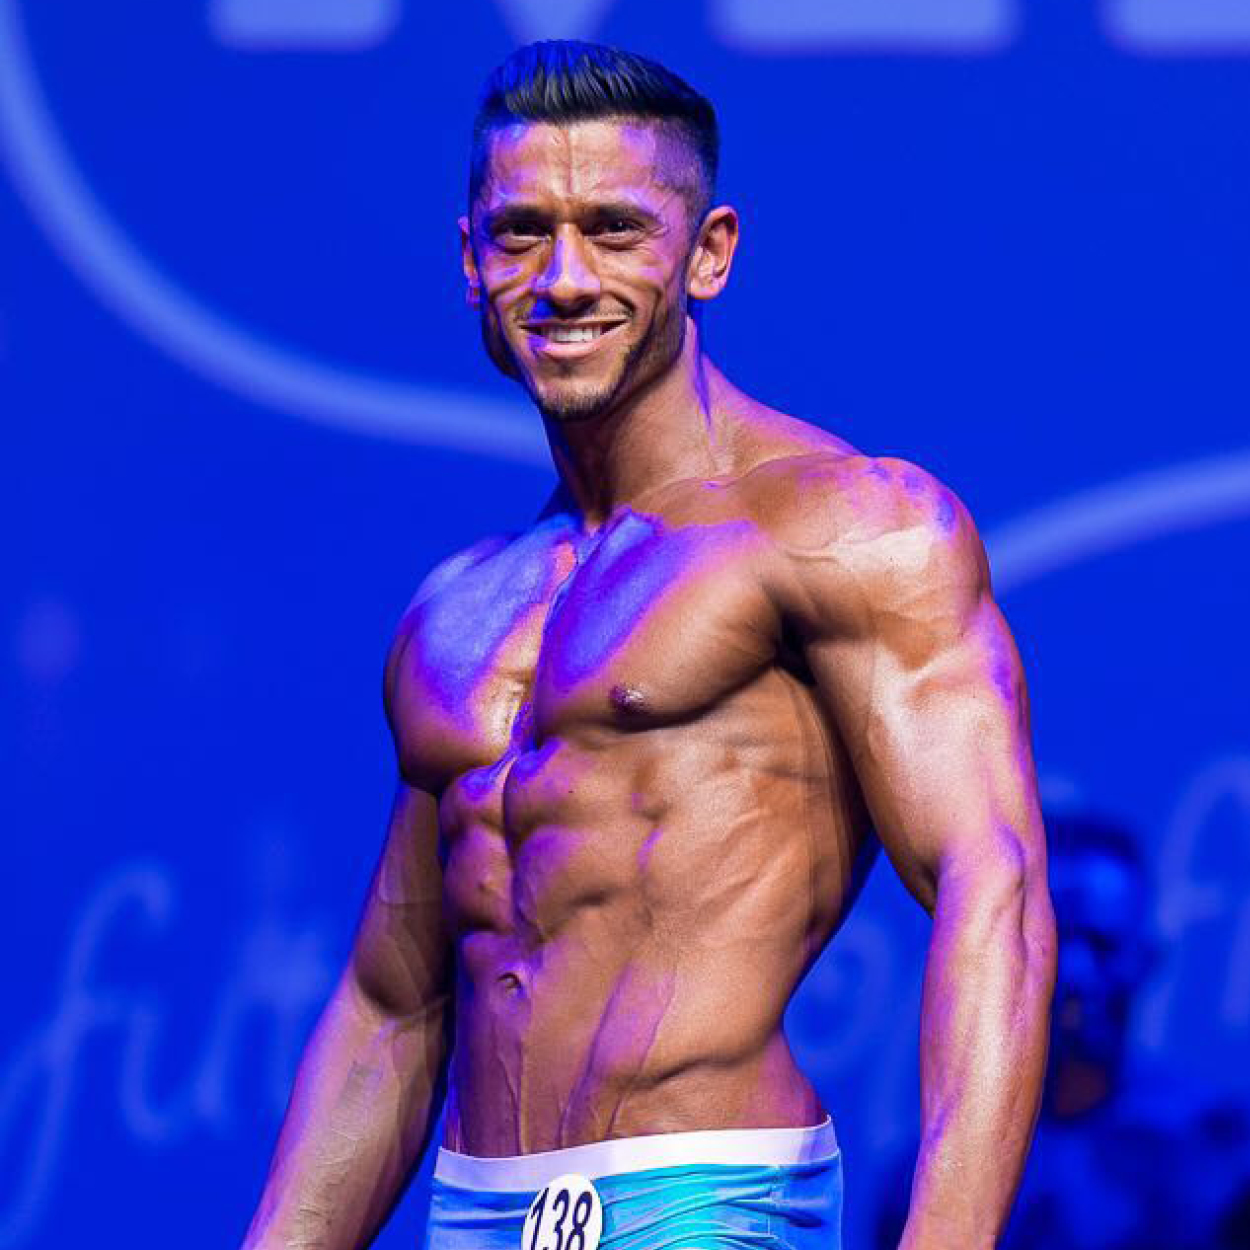 """OMAAD NAZIR   """"Ever since I started taking my training seriously in January 2013, I had a clear goal to one day step on stage and compete. At the time I knew nothing about competing, the federations, the different categories in each competition or what judges are looking for. However what I did know was in order for me to fulfil my dream of competing I wouldn't be able to do it alone and I would need professional help.  Having researched and trialled a number of different dieting and training methods over the years I noticed I wasn't getting the results I expected of someone who put in so much effort and followed very strict guidelines when it came to nutrition. I knew there was something missing, something I wasn't doing right, that's when I contacted Adam. I was always familiar with Adams work through social media and was inspired by what Adam had achieved and the success his clients had experienced in their competitions under Adams guidance. When we sat down and discussed my plans to compete and the methods we were going to use I knew straight away that Adam was the right man to get me in the shape of my life and get me stage ready.  We worked on a 12 week plan to the Miami Pro Competition and a further week for the Pure Elite Comp. During the 13 weeks I saw my body transform week by week with regular check ins and continuous support, I felt at ease throughout the whole prep knowing that I am in good hands with the expert advice and knowledge being passed on to me by Adam. Everything Adam anticipated would happen from changes to the diet and training splits was happening right before my eyes and I was left speechless at how knowledgeable my coach was. I followed the whole plan perfectly without cutting any corners, prepped all my meals to the gram, ate all my meals at the suggested times and trained exactly how I was instructed to focusing on hitting the target rep ranges and tempos.  Without Adams help and support I don't think I would have ever achieved what I """